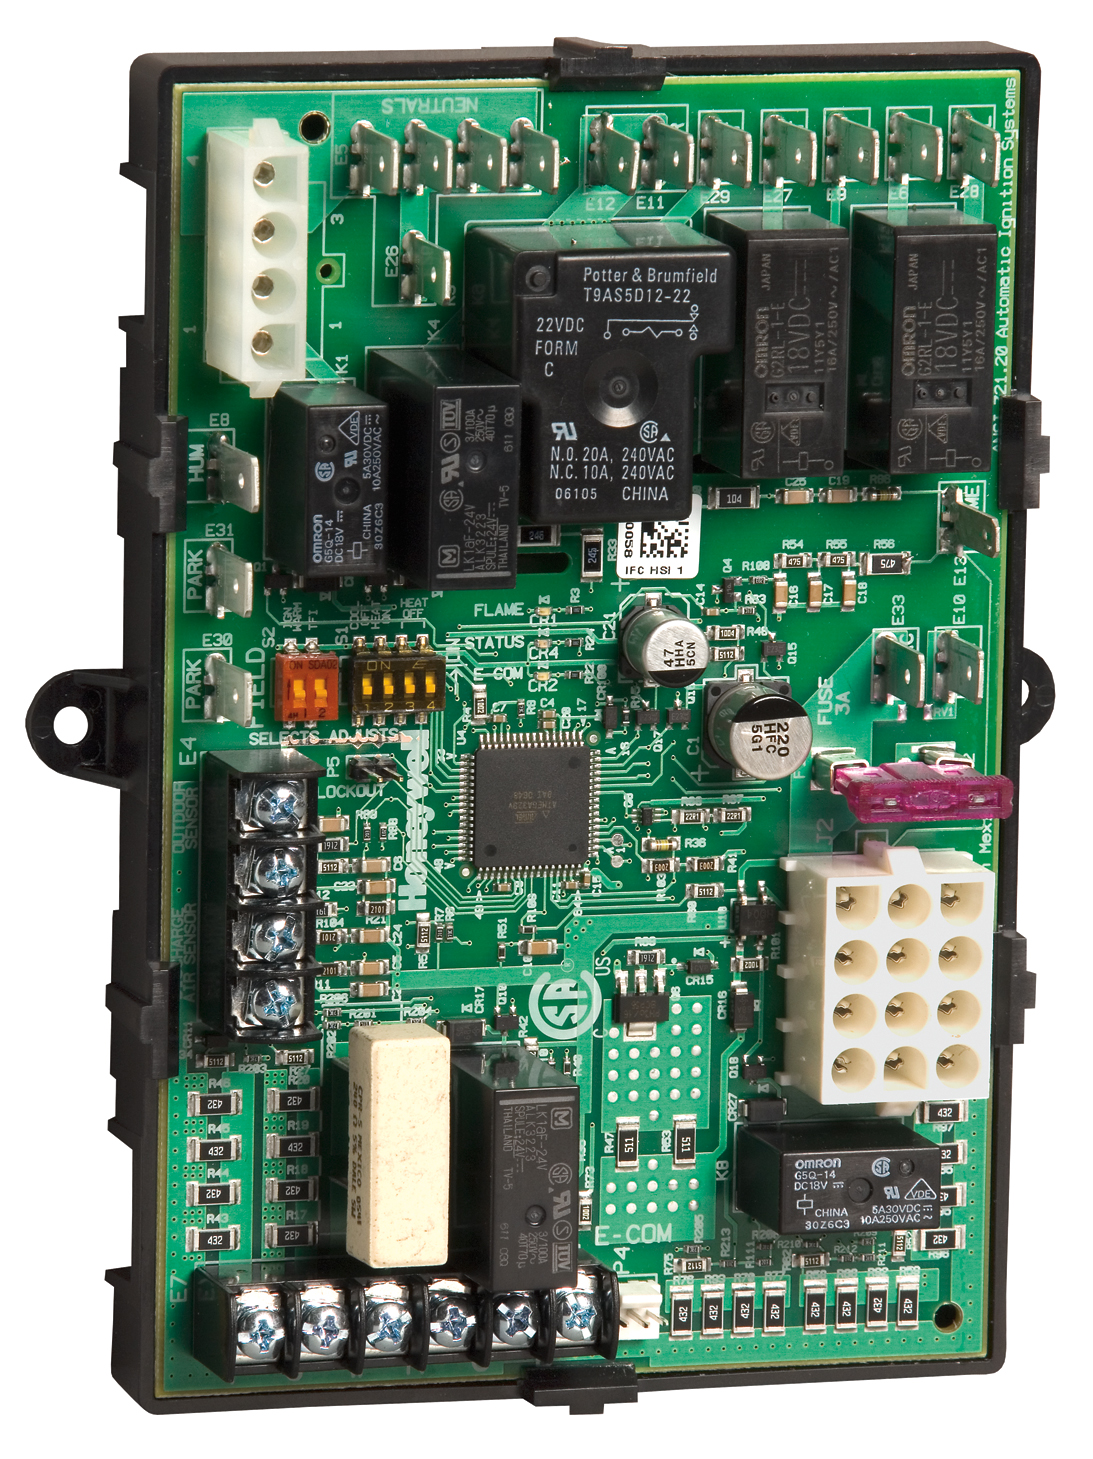 hight resolution of board comes installed inside of a plastic tray for easy installation and protection against